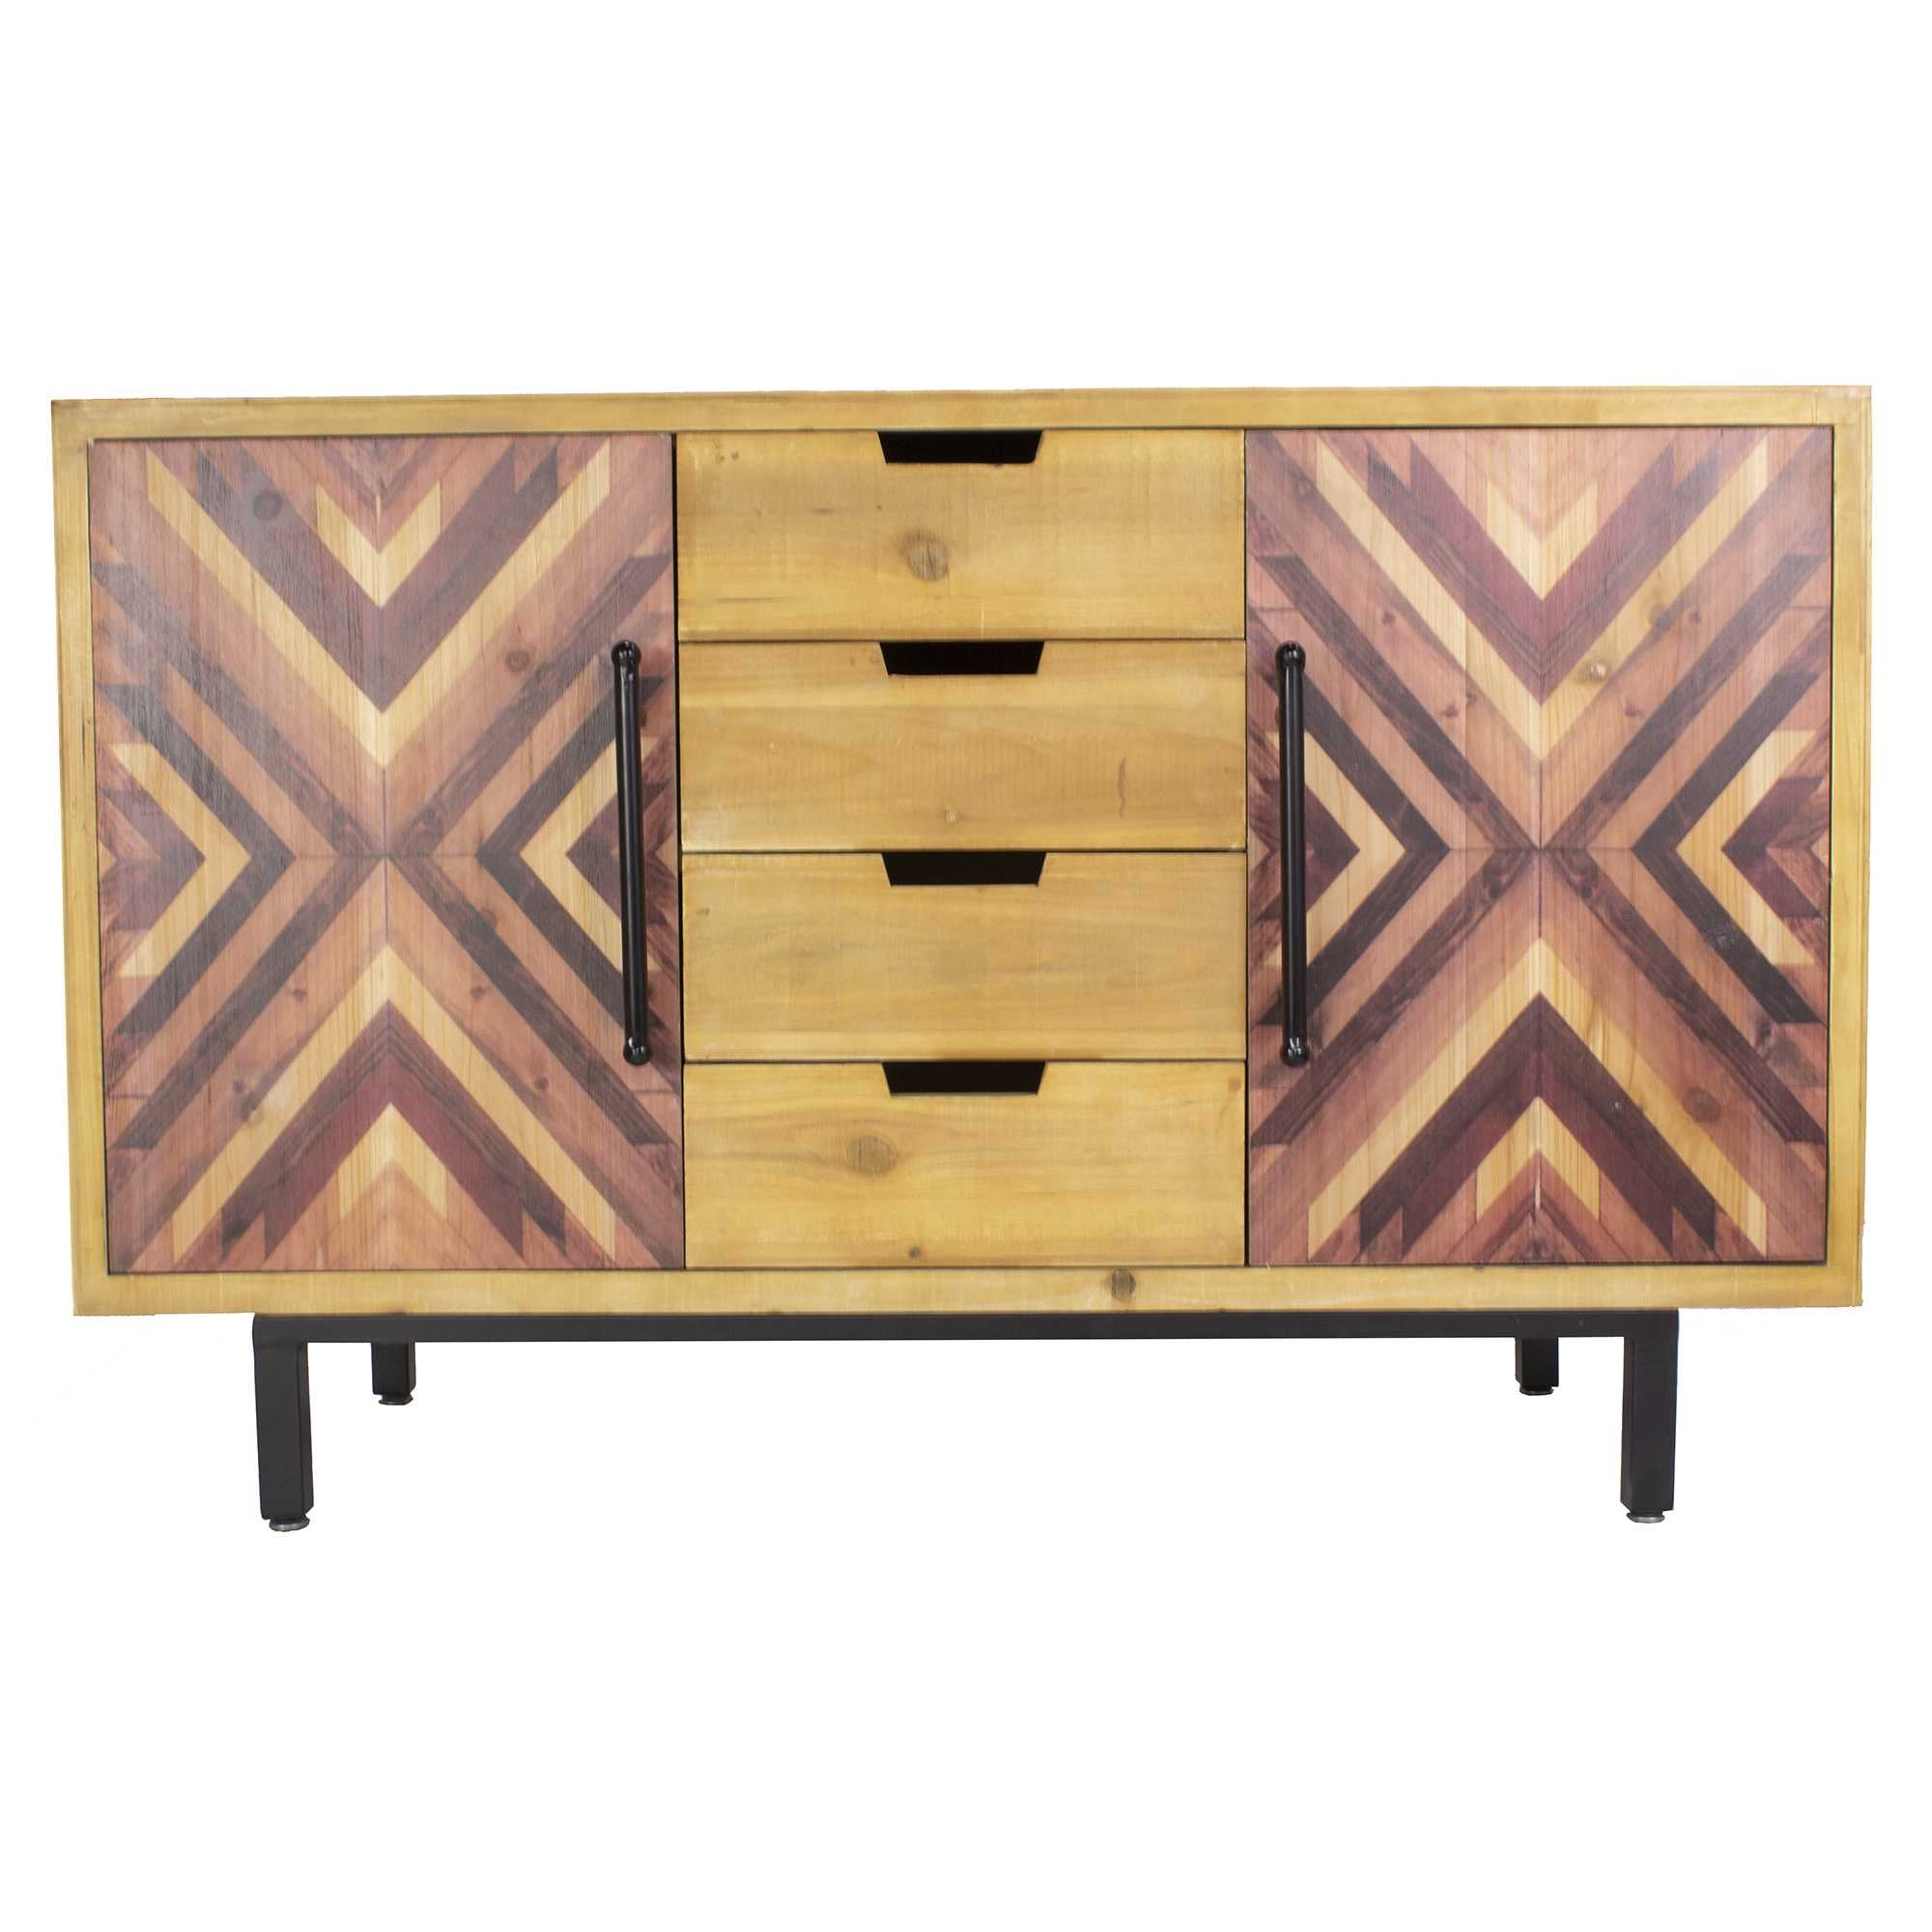 "47'.25"" X 15'.75"" X 30"" Brown MDF Contemporary Wooden Sideboard Cabinet"